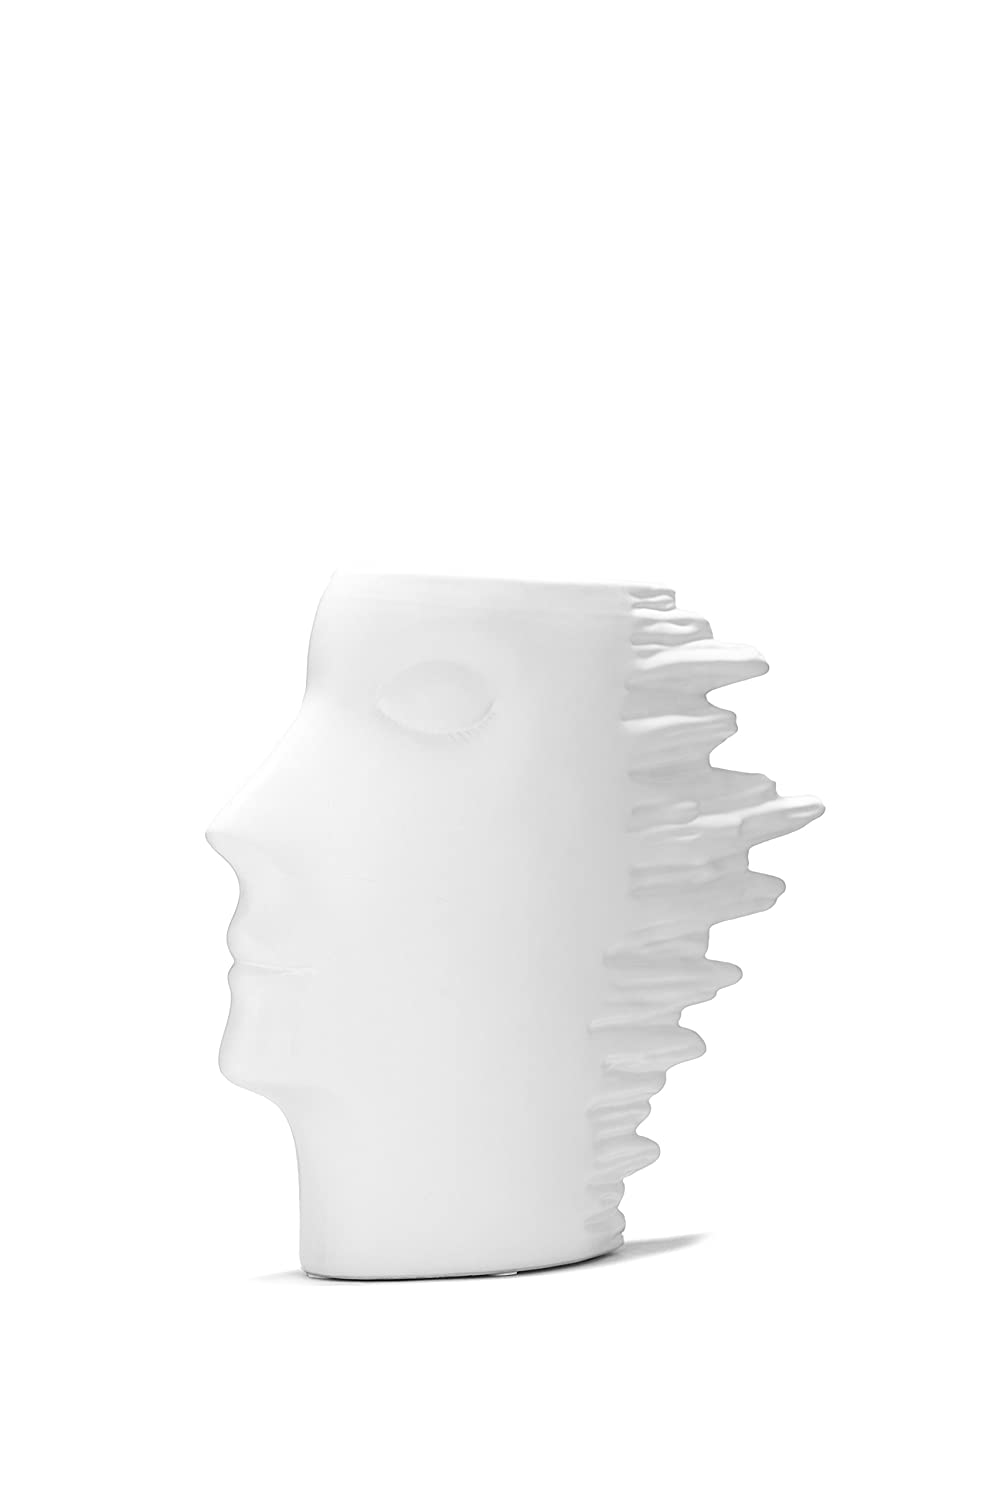 Amazon human head vase planter ceramic side view face amazon human head vase planter ceramic side view face figurine abstract modern statue 9 1 home kitchen reviewsmspy